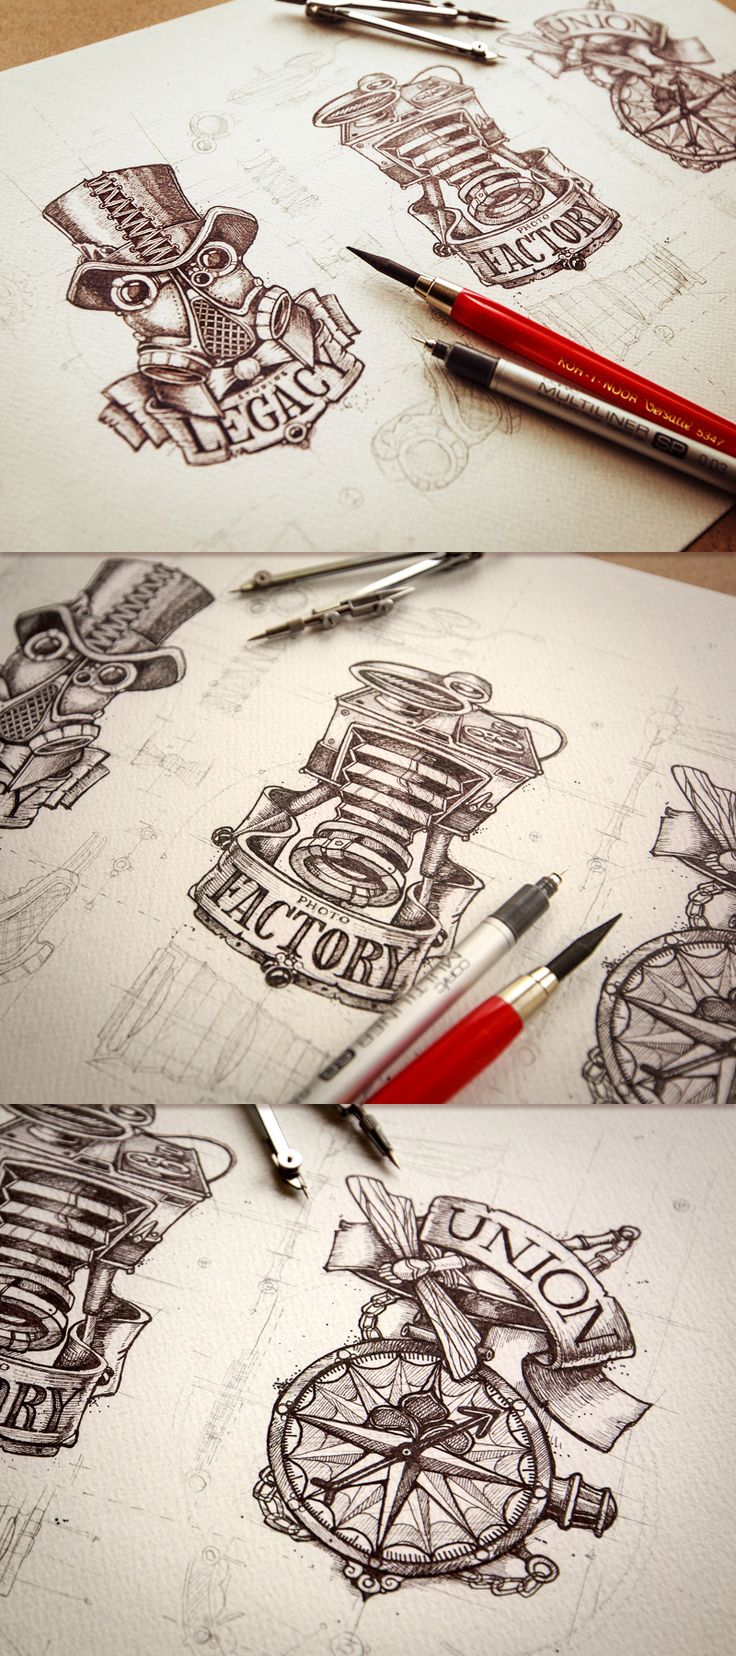 Logo Concepts; this whole page has some amazing artwork. You should definitely go check it out!